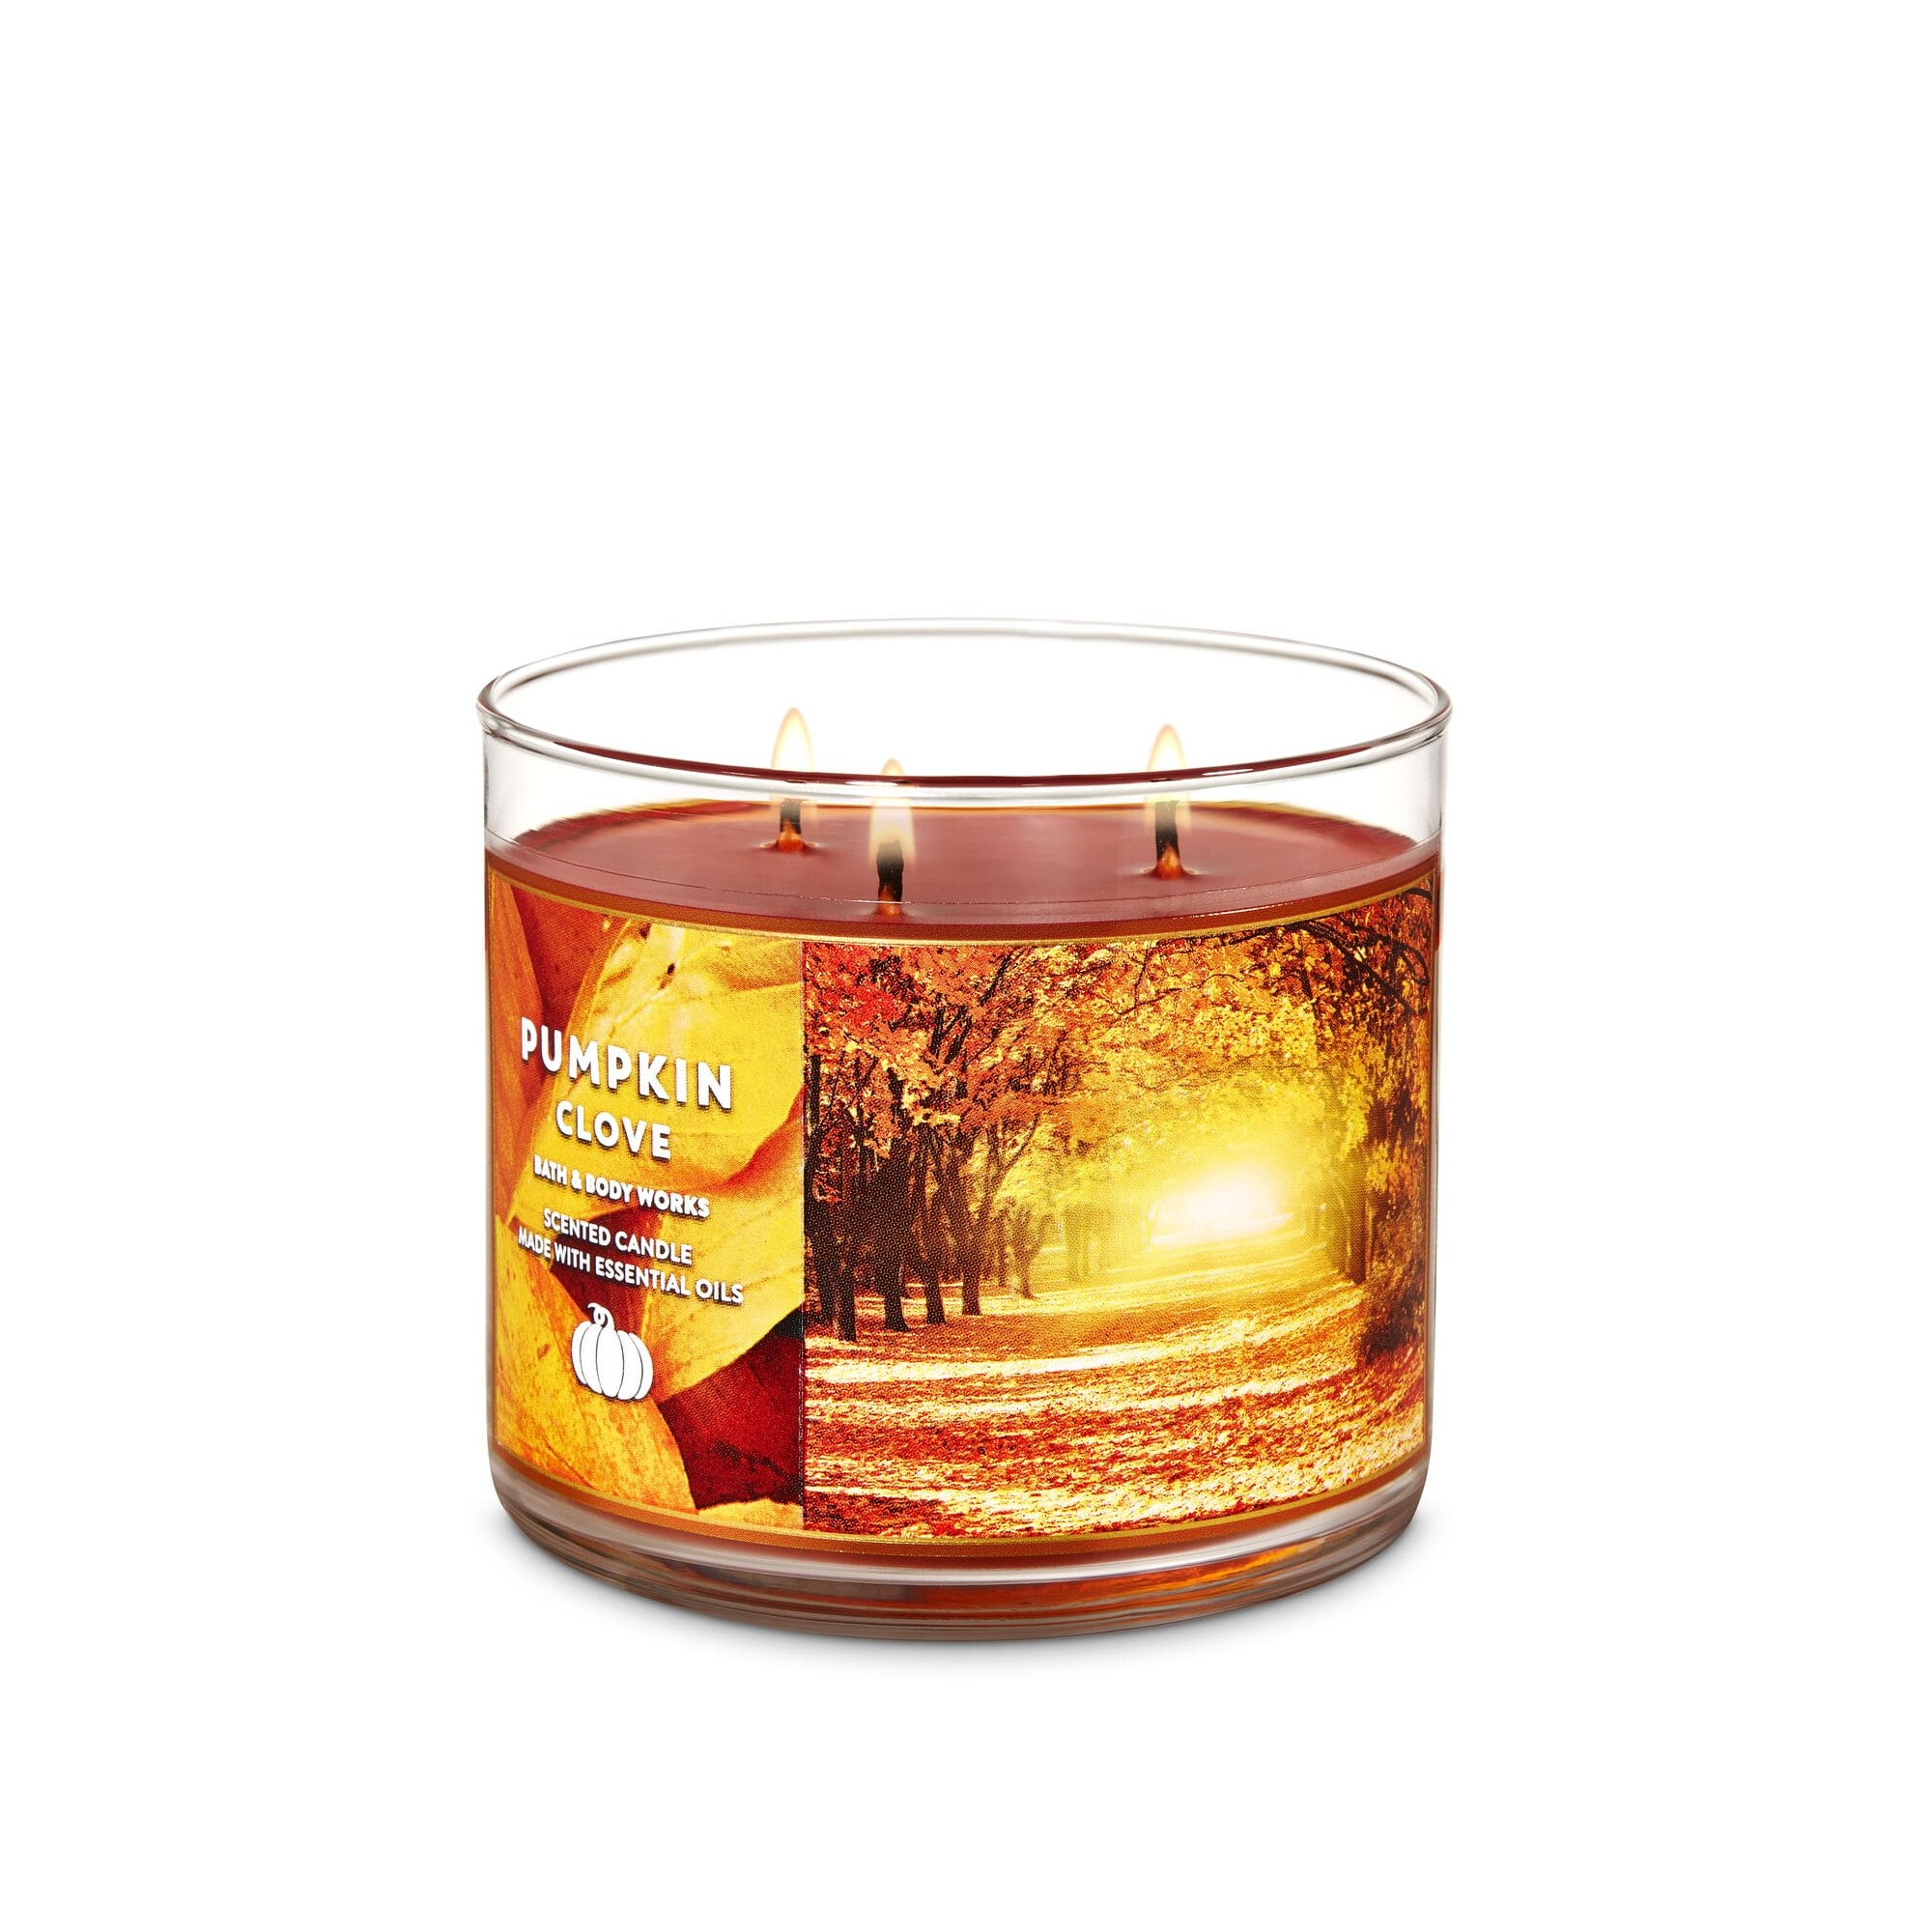 Bath & Body Works Pumpkin Clove 3 Wick Scented Candle